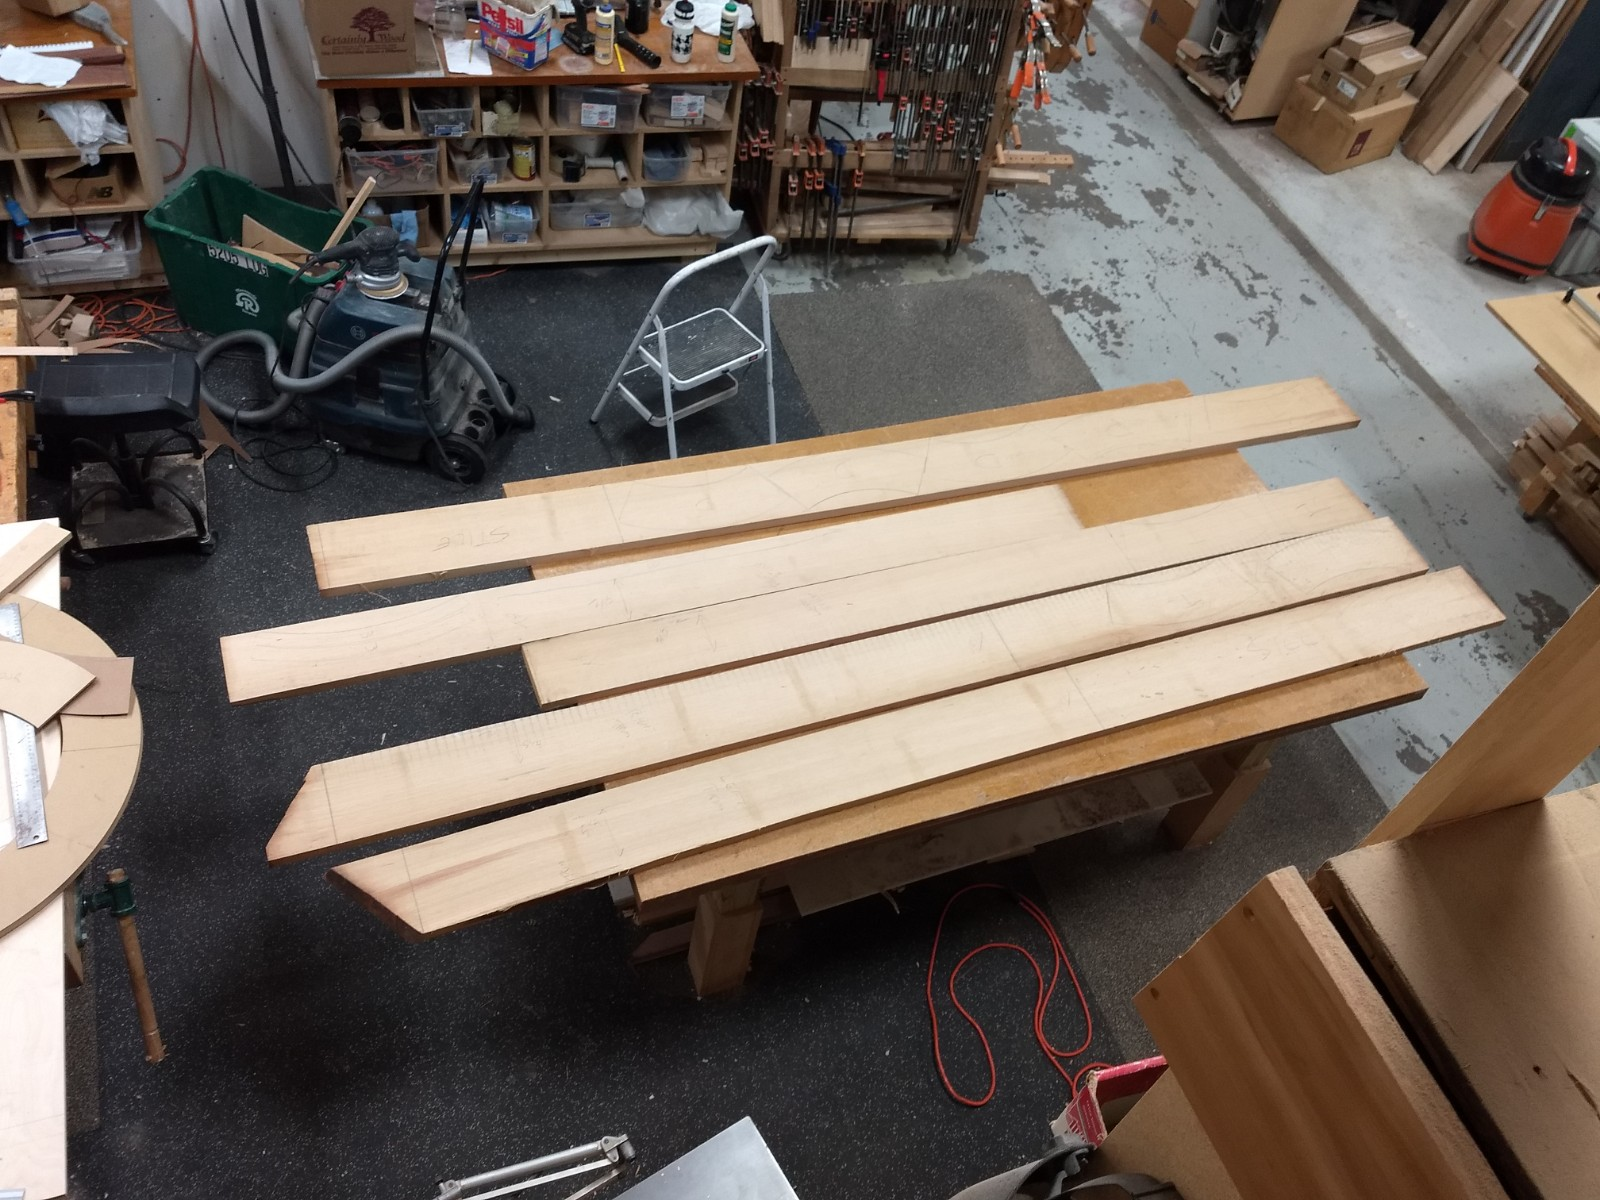 Pieces layed out on boards